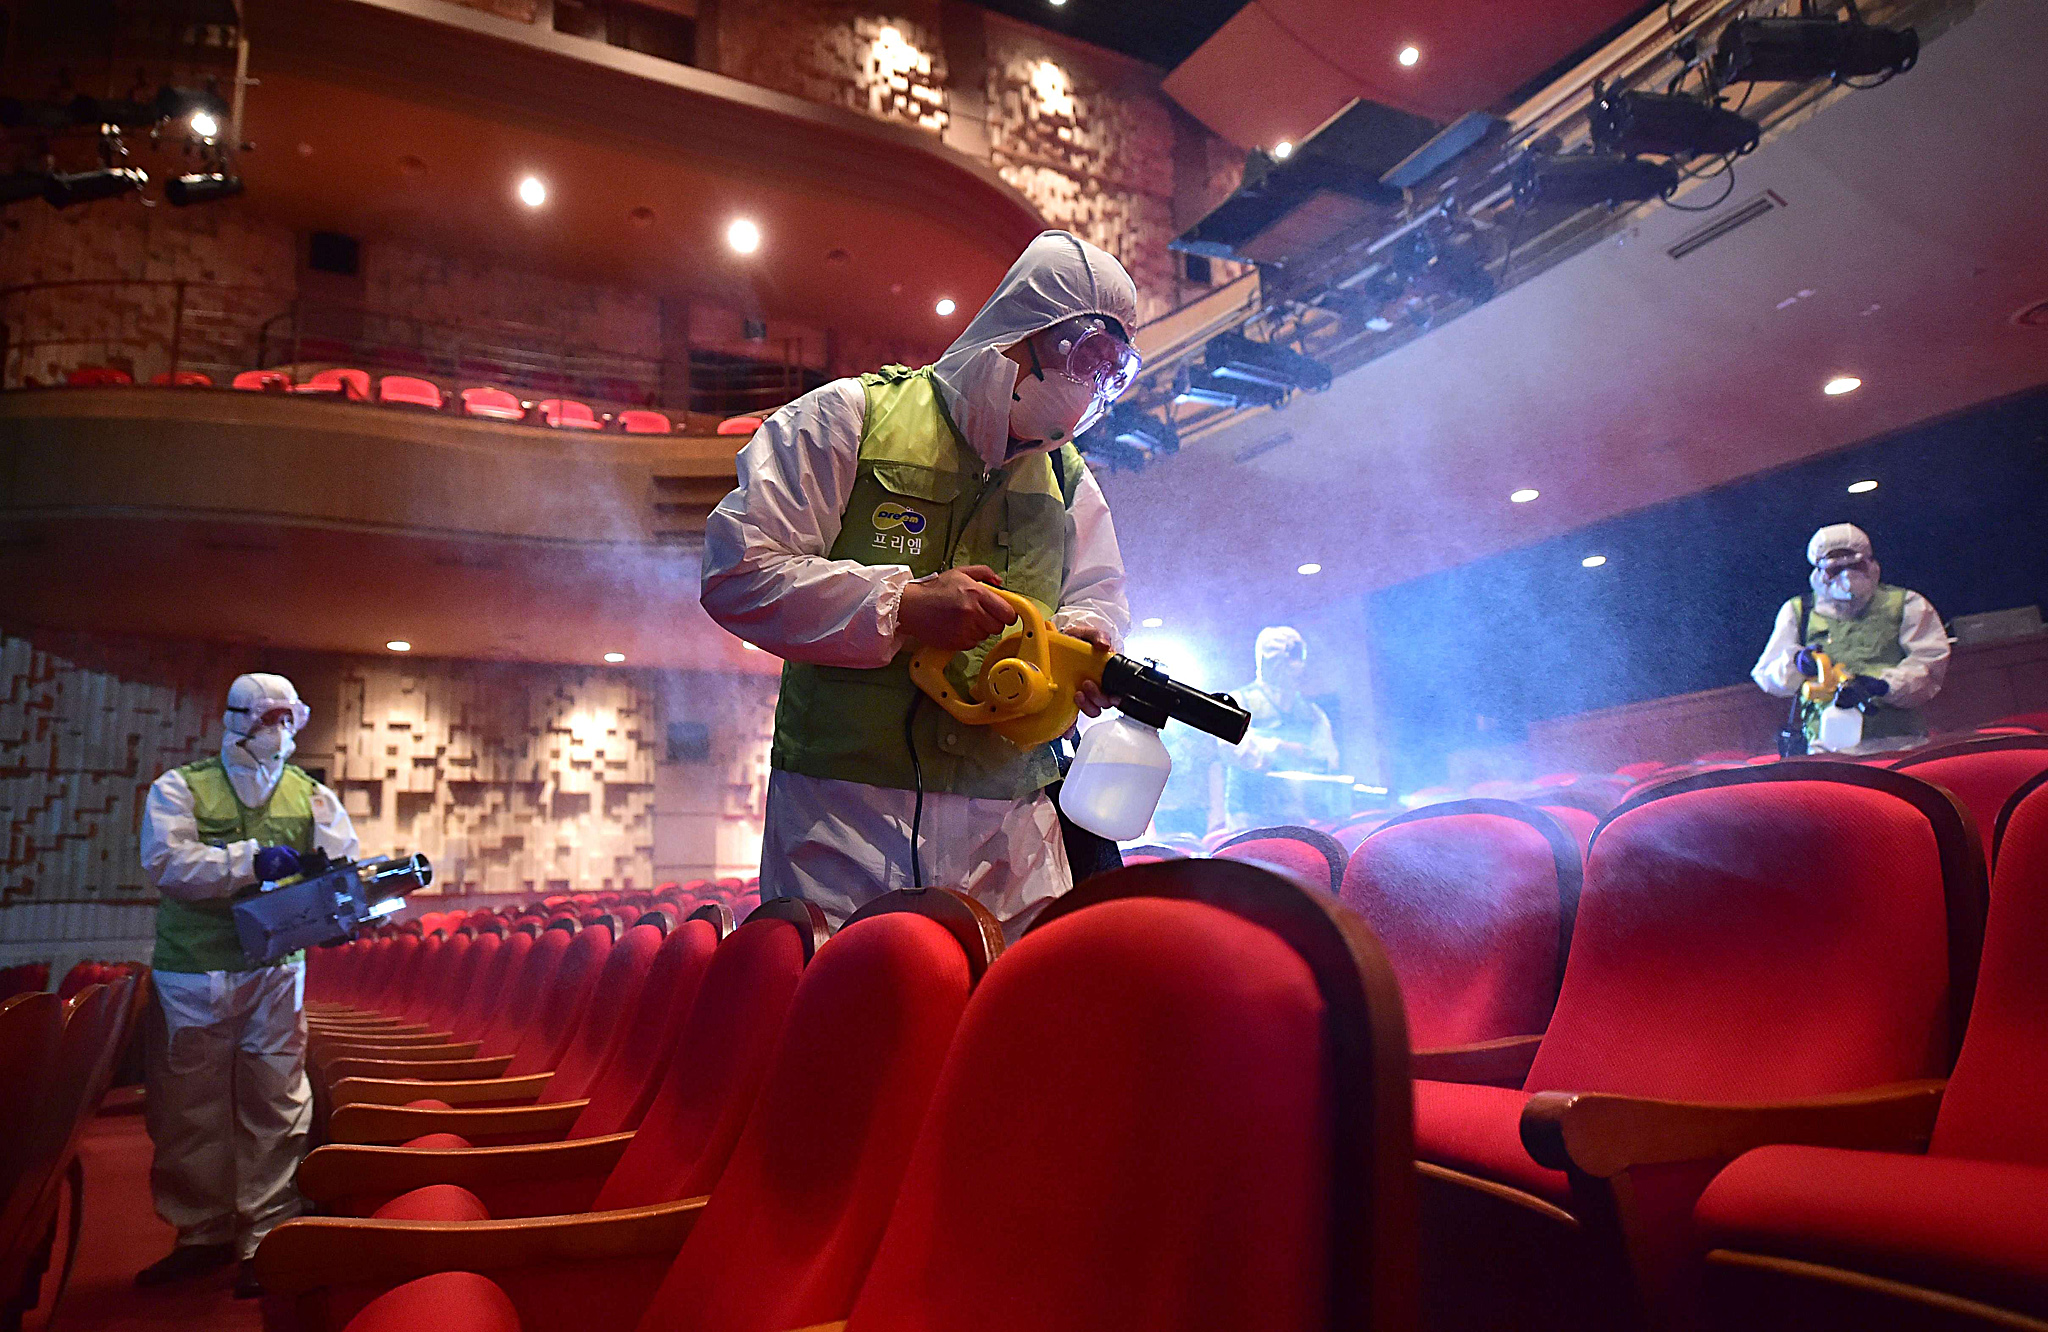 South Korean workers wearing pr...TOPSHOTS South Korean workers wearing protective gear fumigate a theater at the Sejong Culture Center in Seoul on June 16, 2015. South Korea on June 16 reported three more fatalities from MERS, taking the country's death toll from the outbreak to 19 as four new cases were confirmed, the health ministry said.     AFP PHOTO / JUNG YEON-JEJUNG YEON-JE/AFP/Getty Images